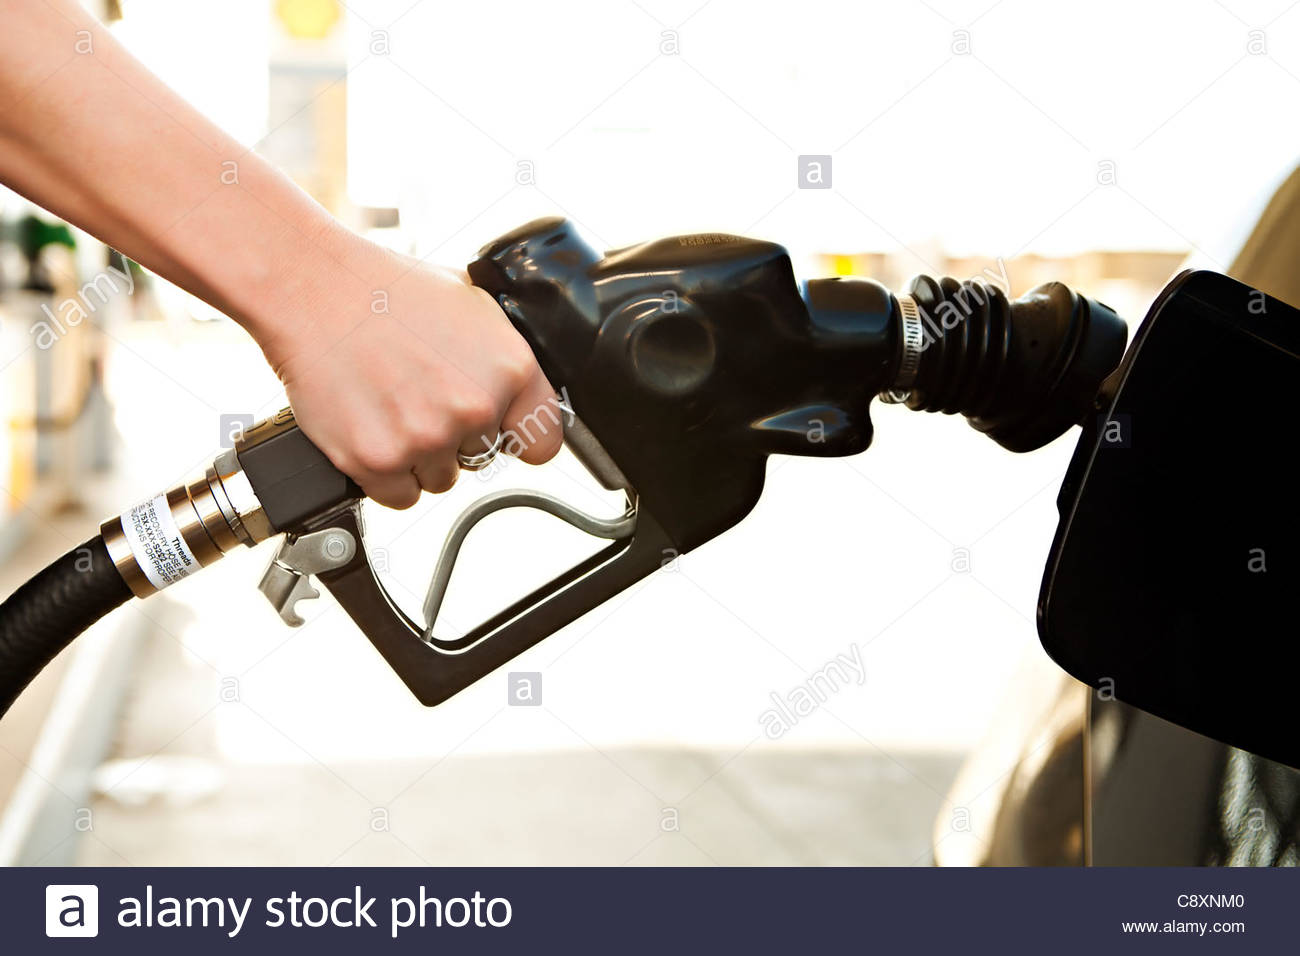 USA, California, Lawndale, Female hand inserting fuel pump into car gas tank - Stock Image